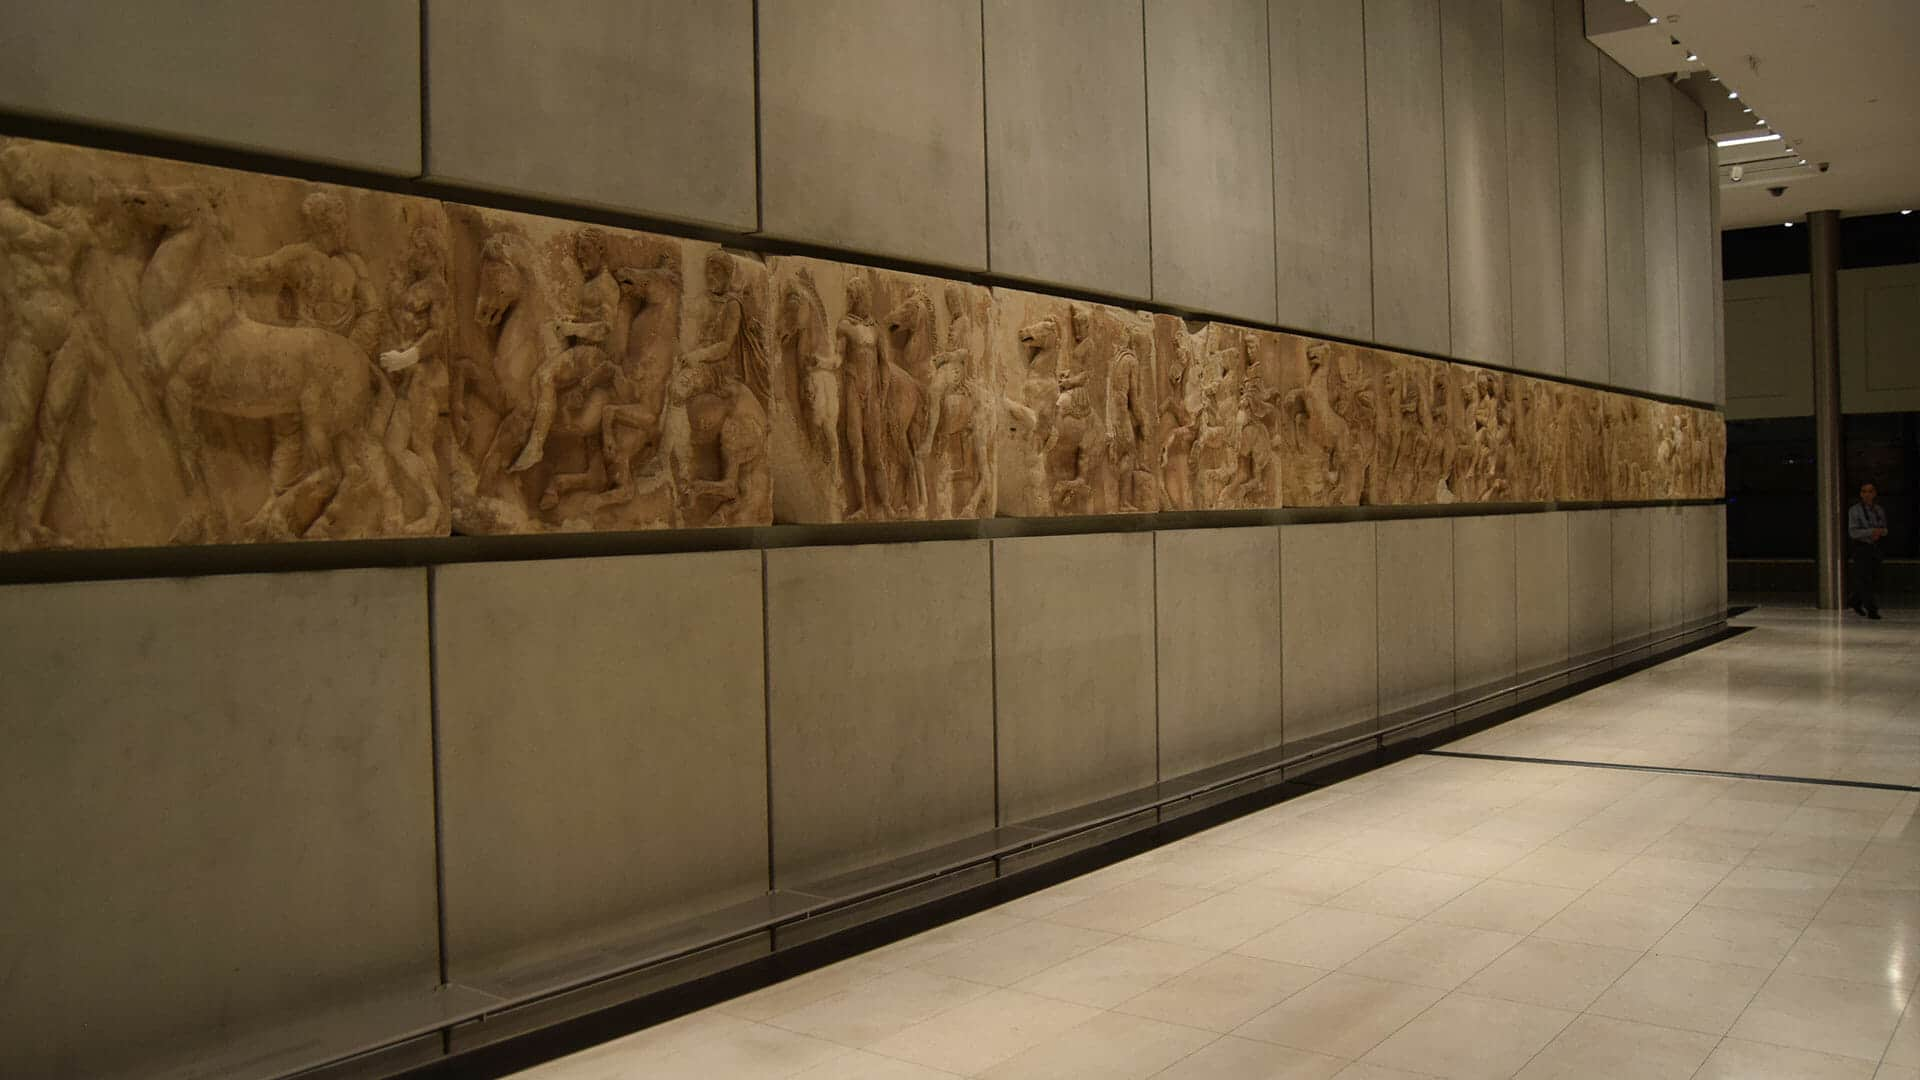 Parthenon Marbles in the Acropolis Museum